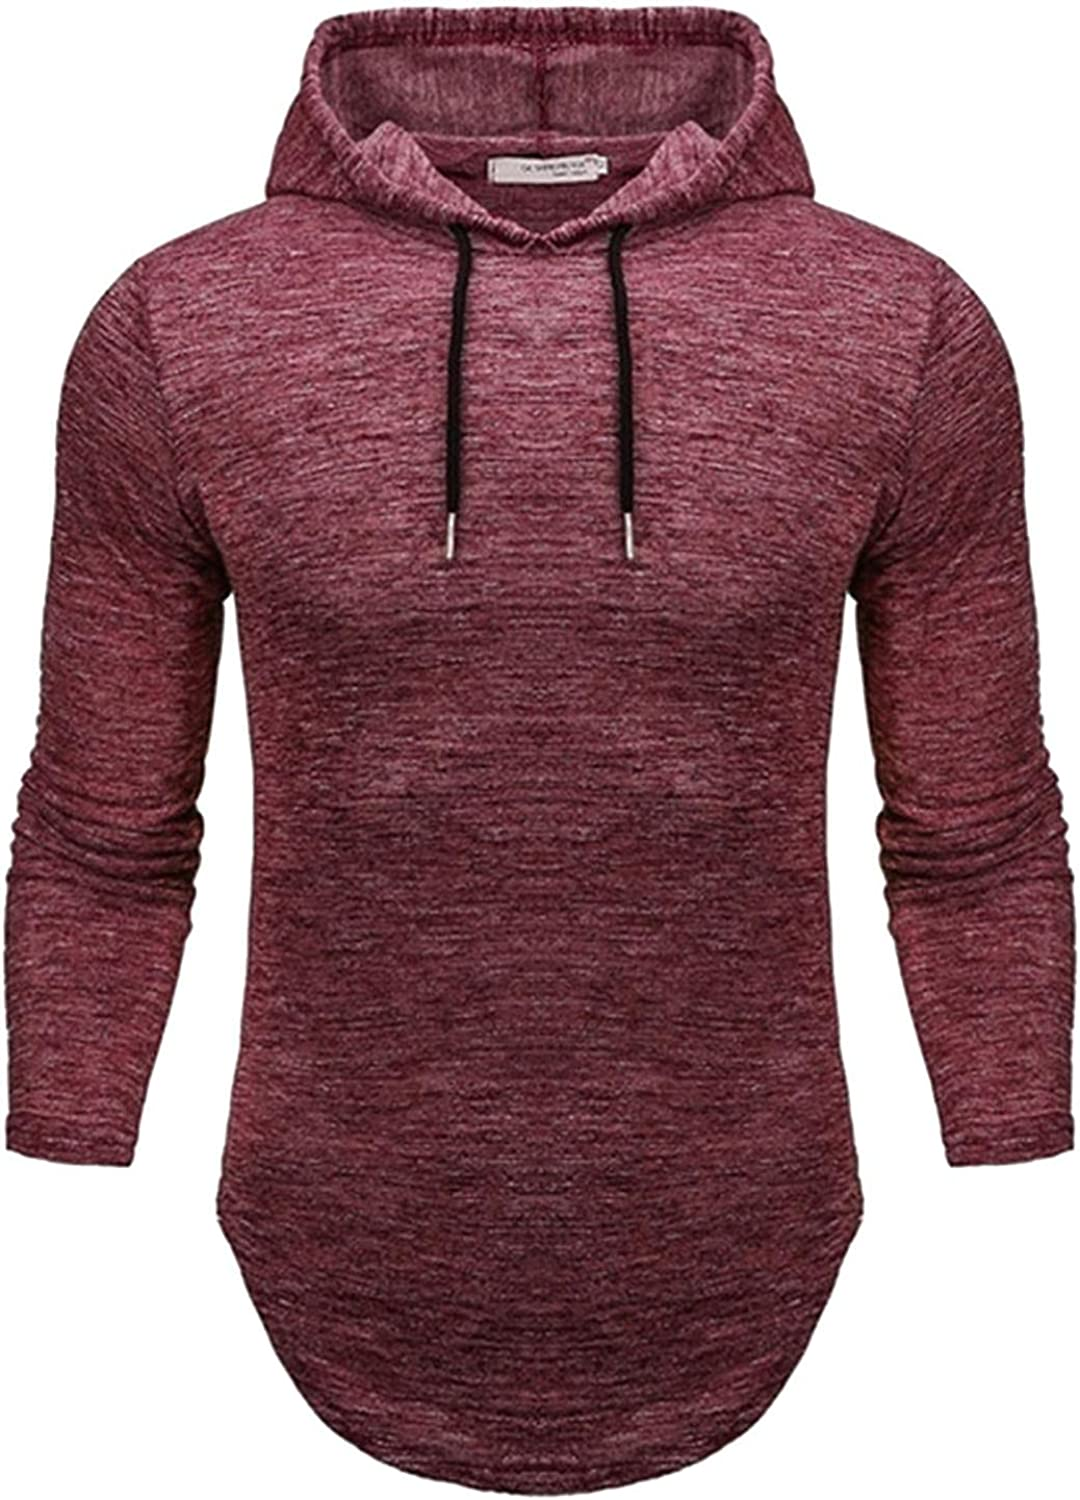 Mens Hooded Sweatershirt Solid Long Sleeve Hoodies Pullover Hipster Hip Hop Hem Sweater Top Lightweight Athletic Blouse